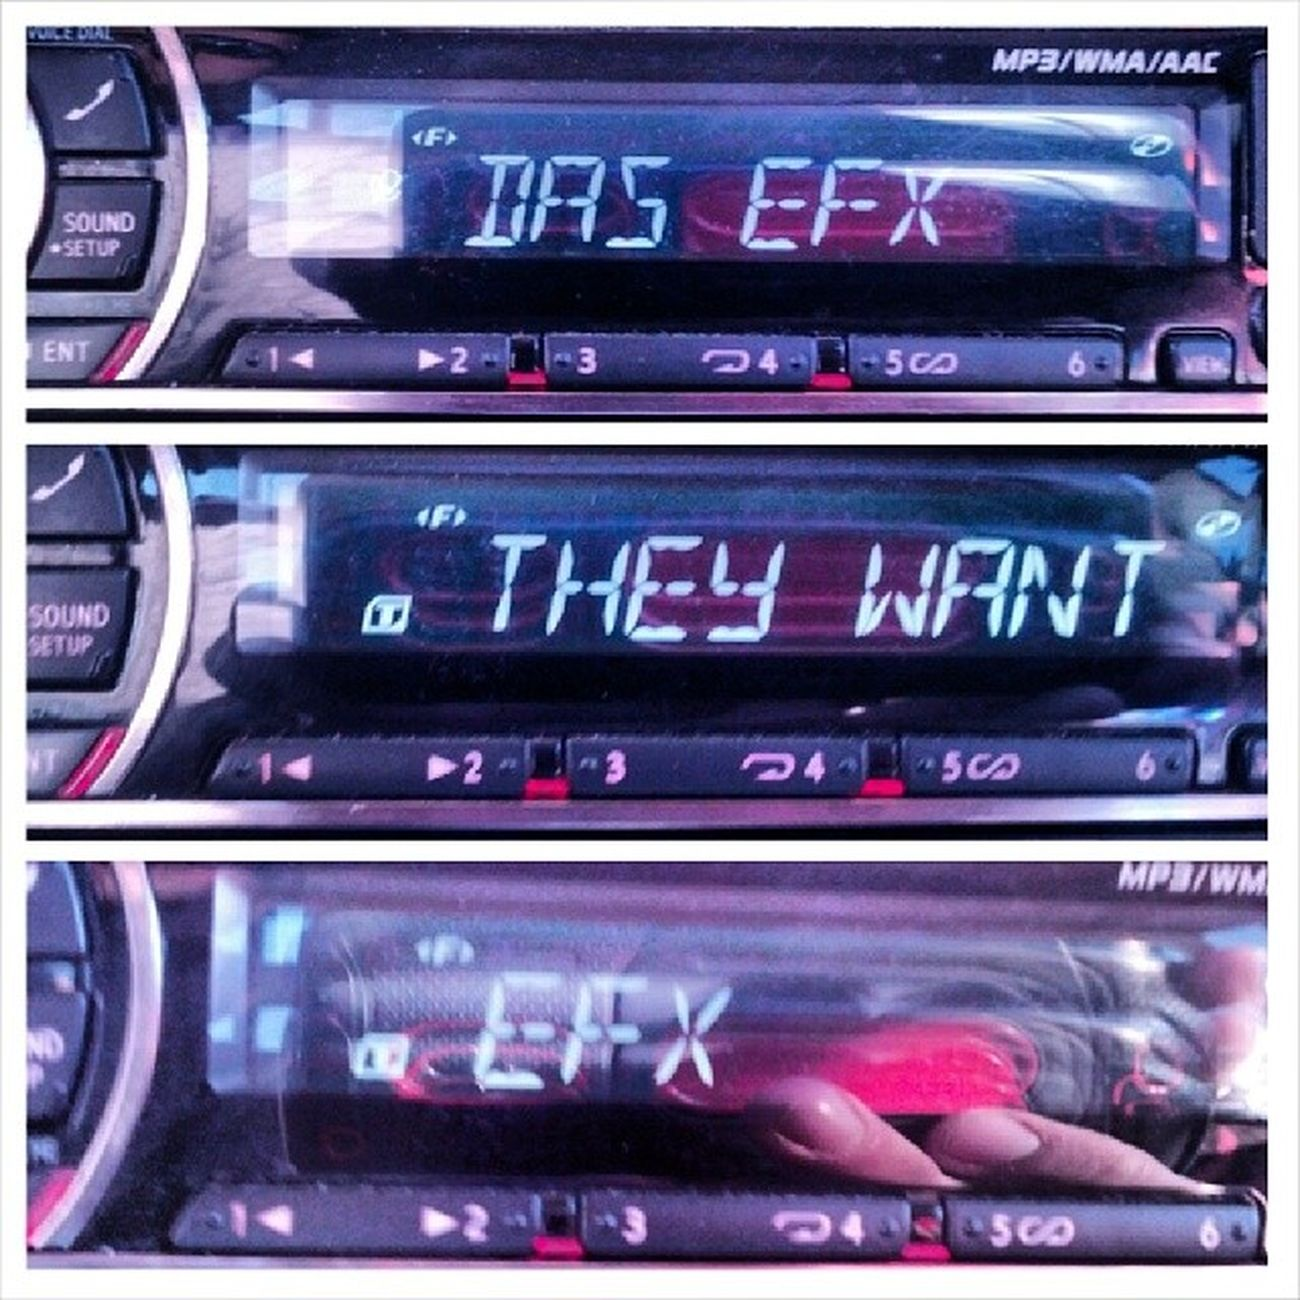 DasEfx FLASHBACK! This jam right here!! TheyWantEFX WhackWednesday 90sHipHop